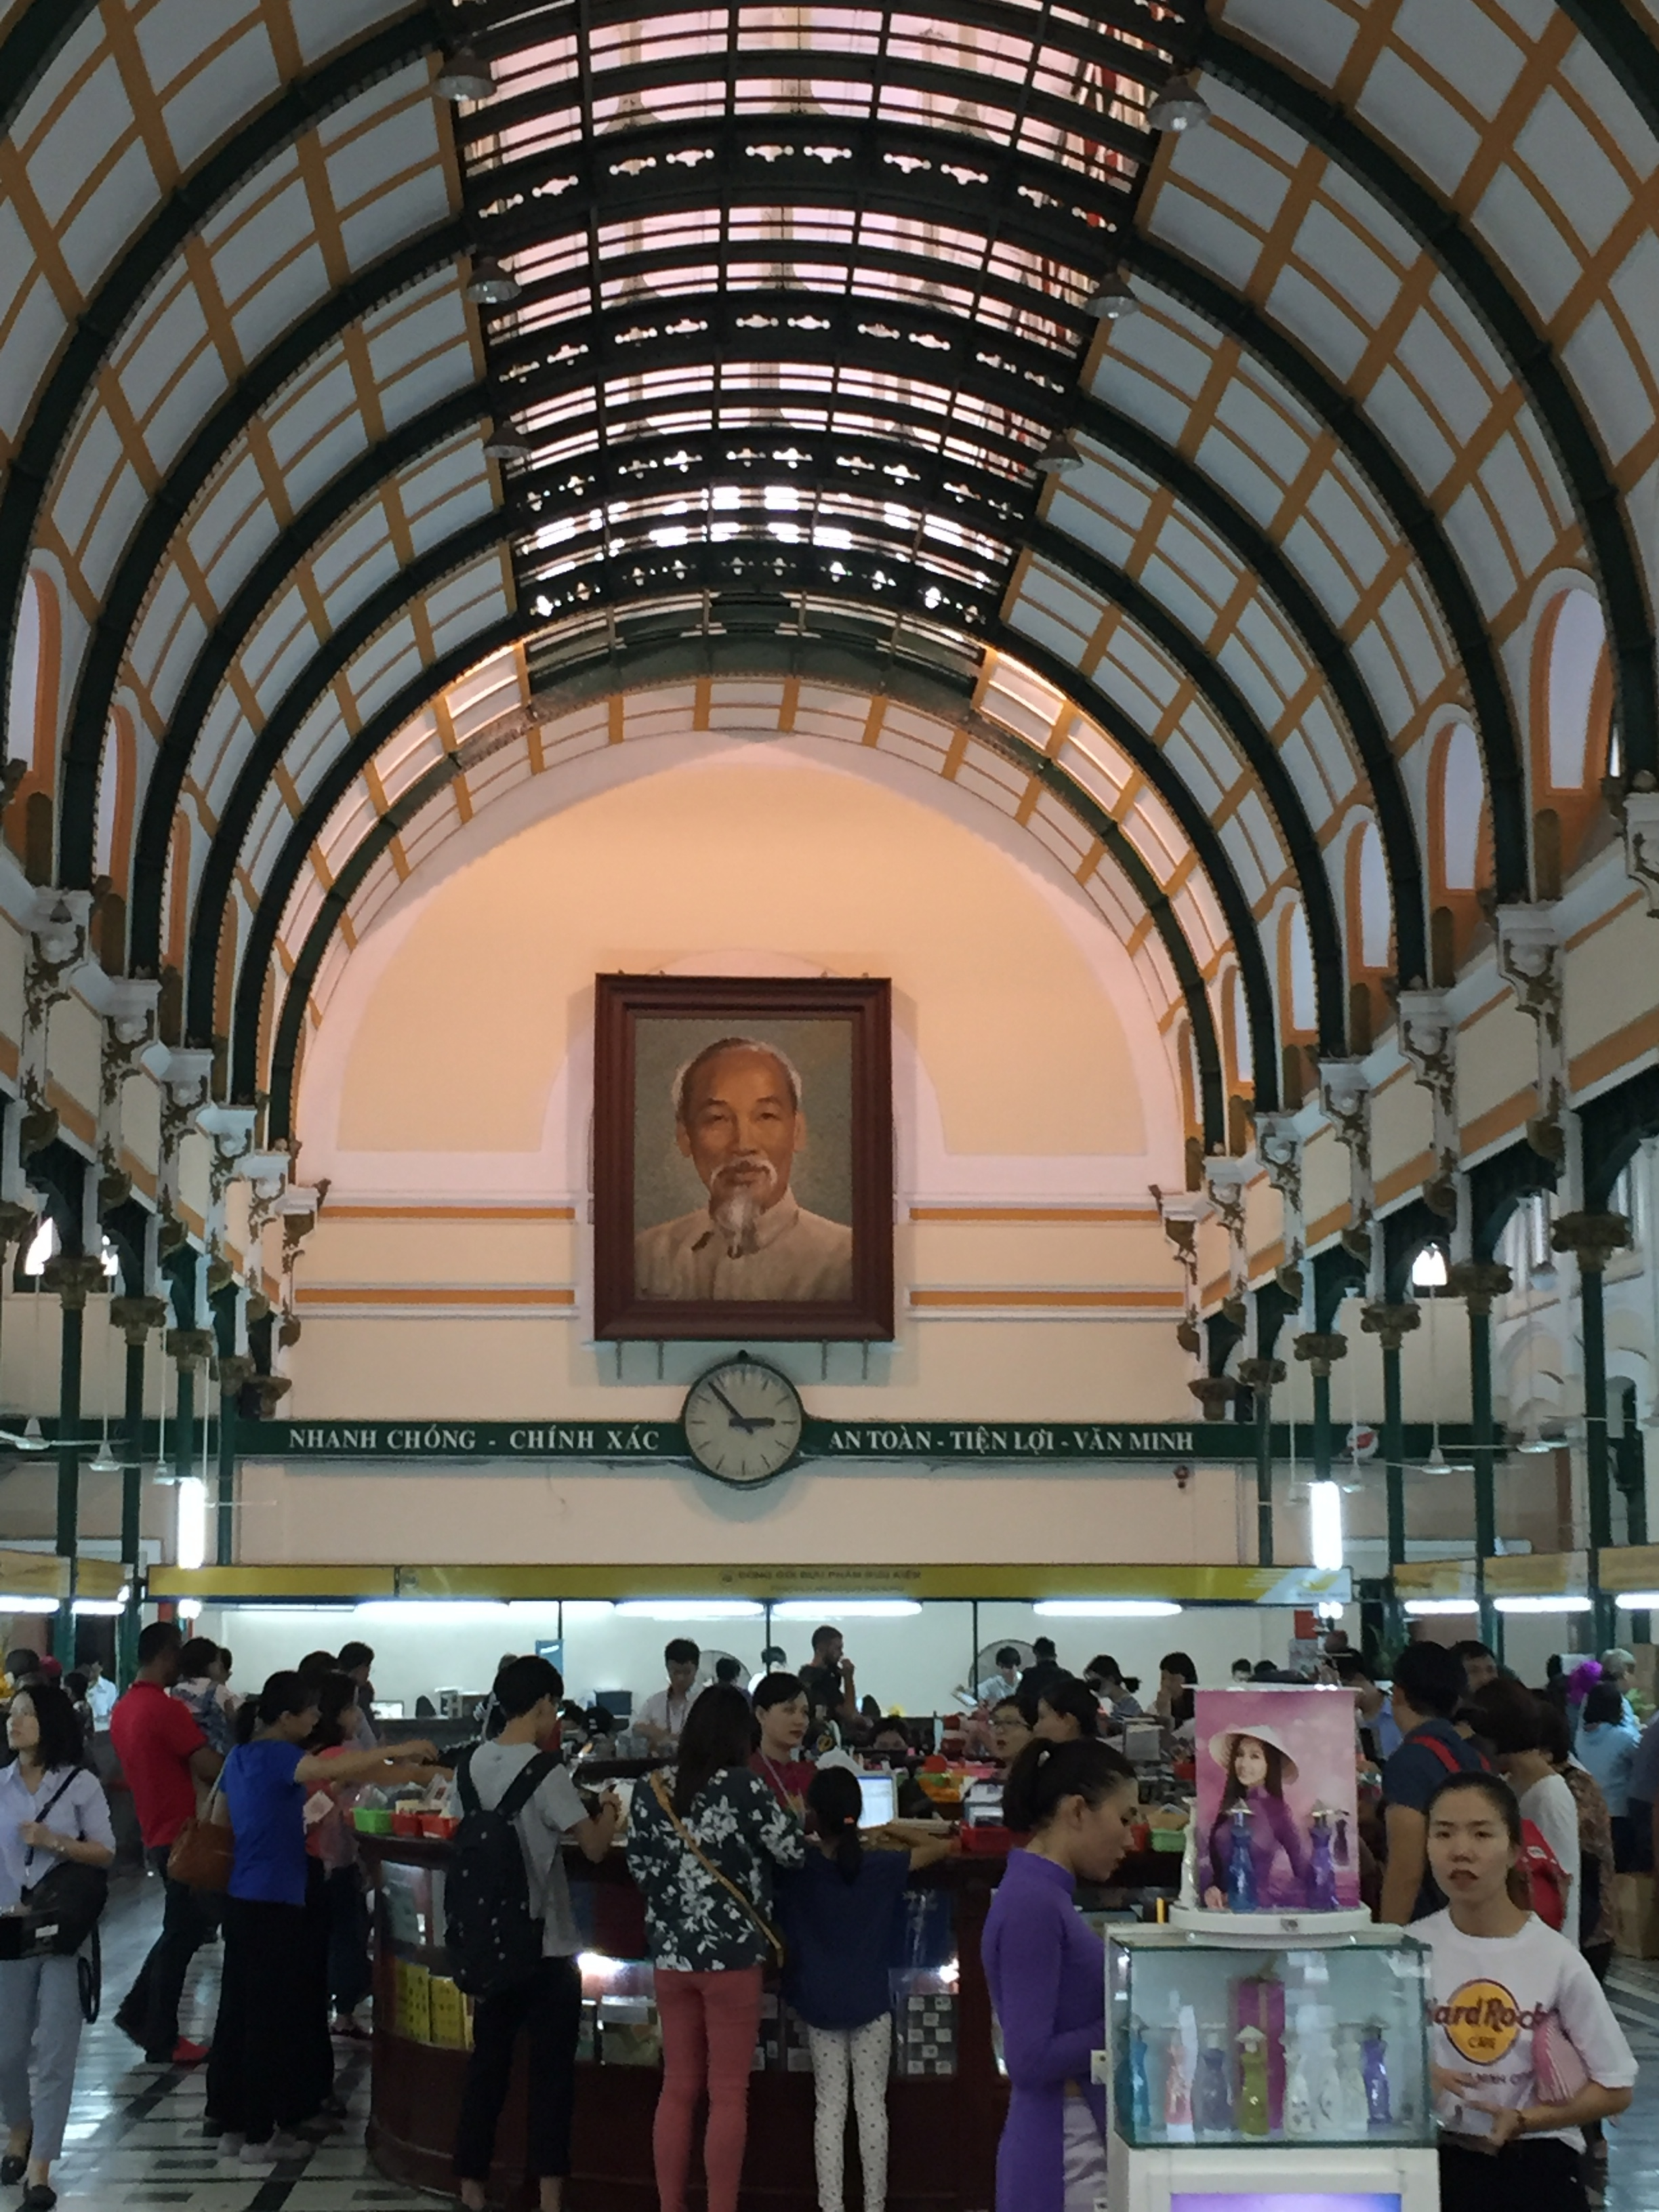 Ho Chi Minh gazes serenely over the Central Post Office.